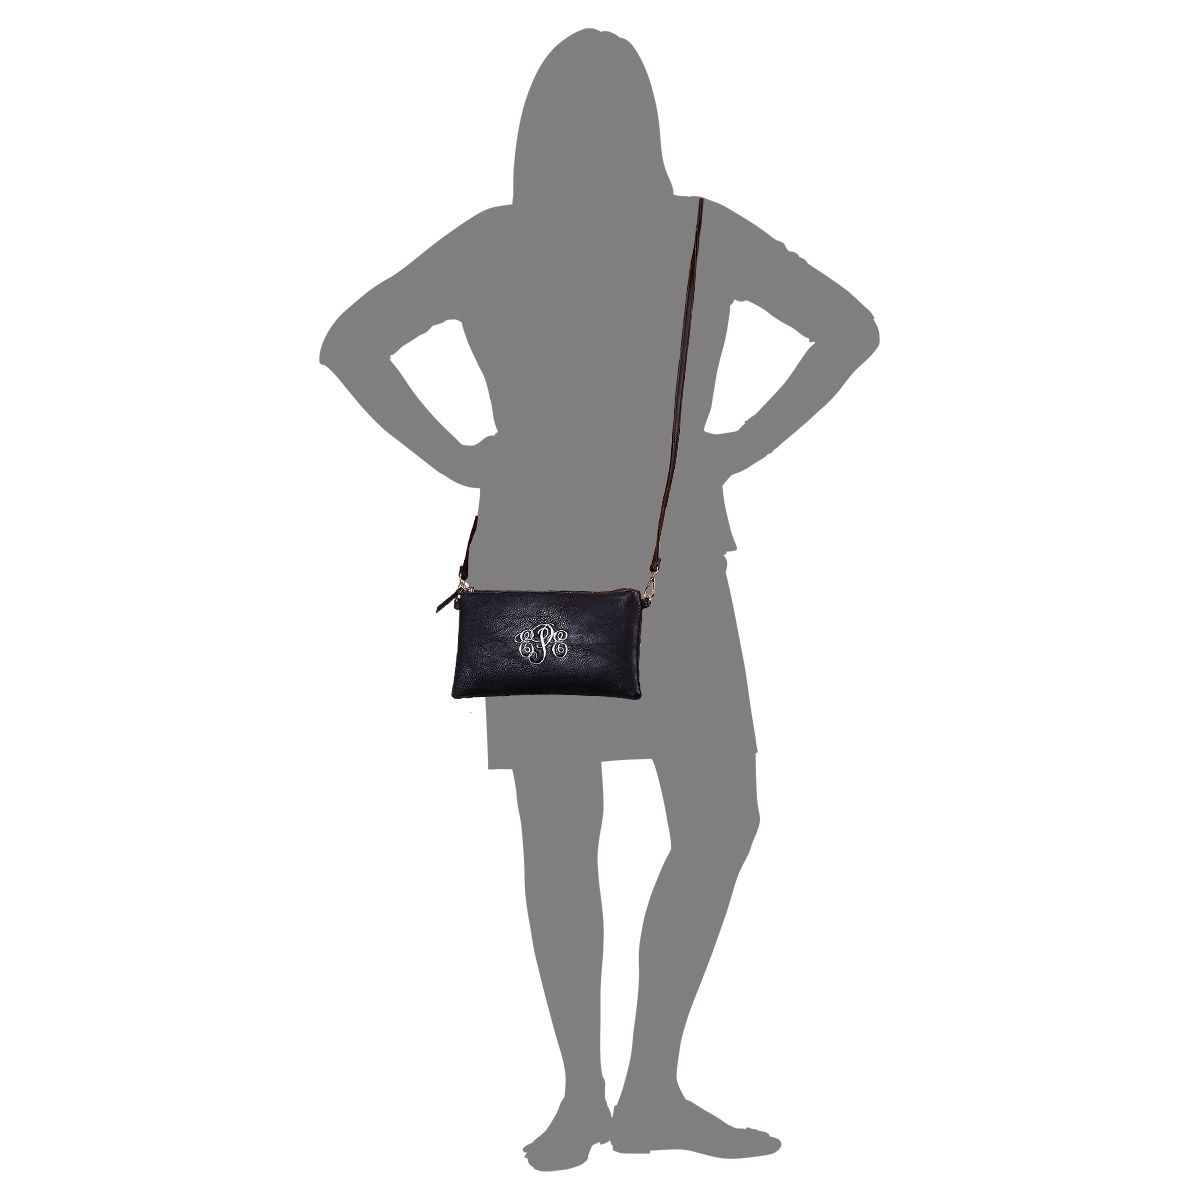 Black Carry-All Nora Tote Bag with Matching Personalized Crossbody Purse